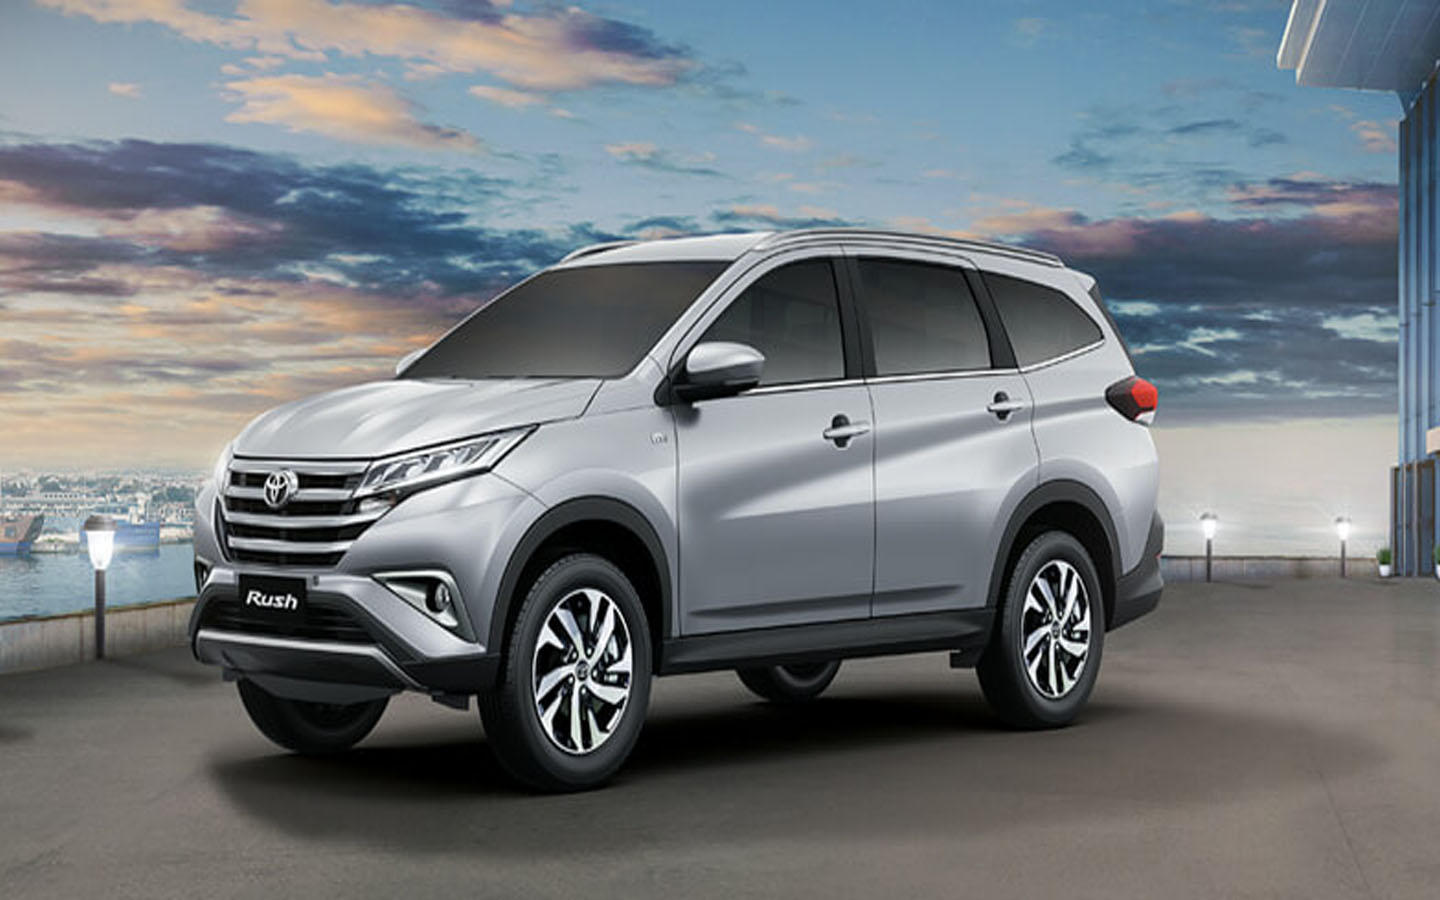 The New Toyota Rush Is Designed With An Exceptional